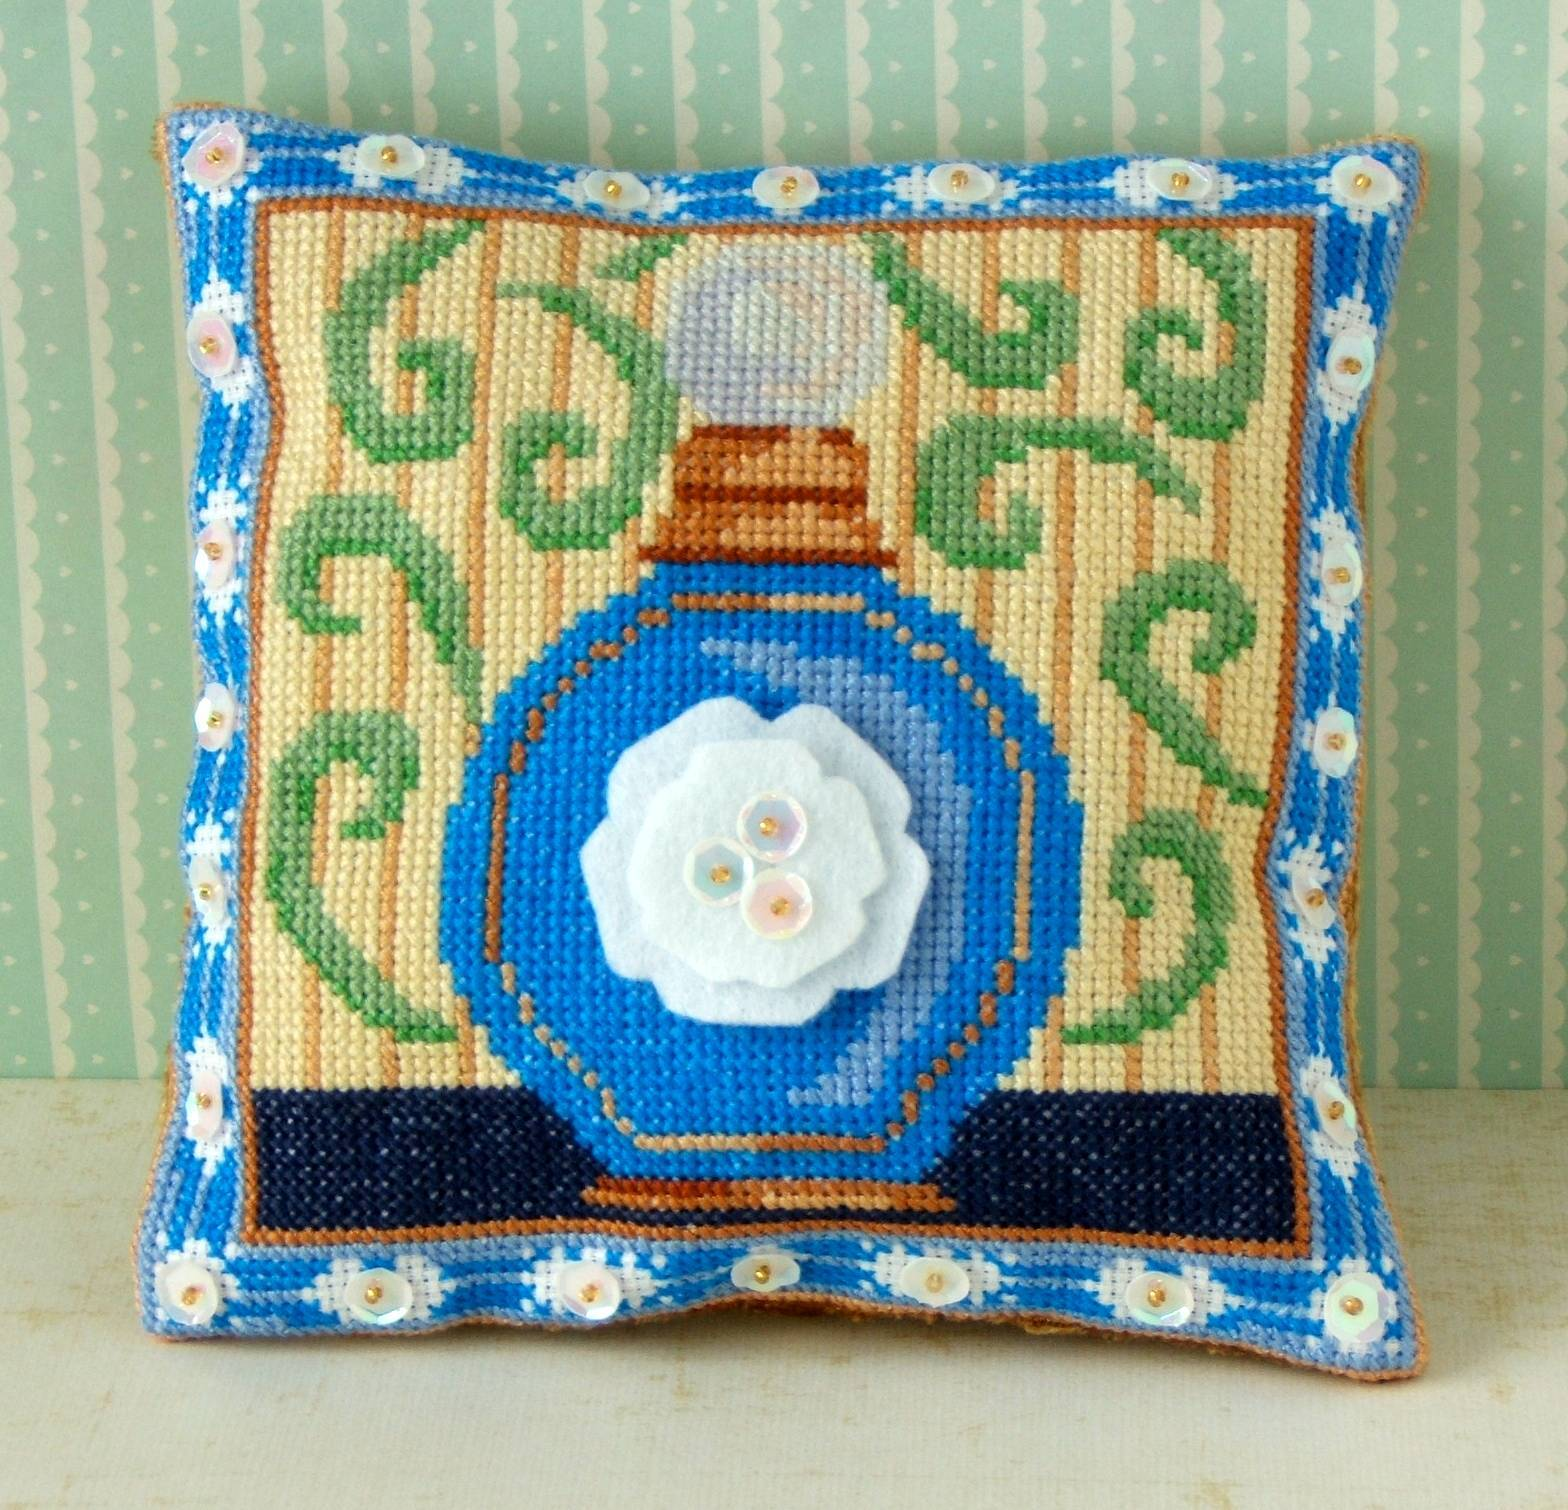 CB04_Perfume_Bottle_-_White_flower_cushion.JPG